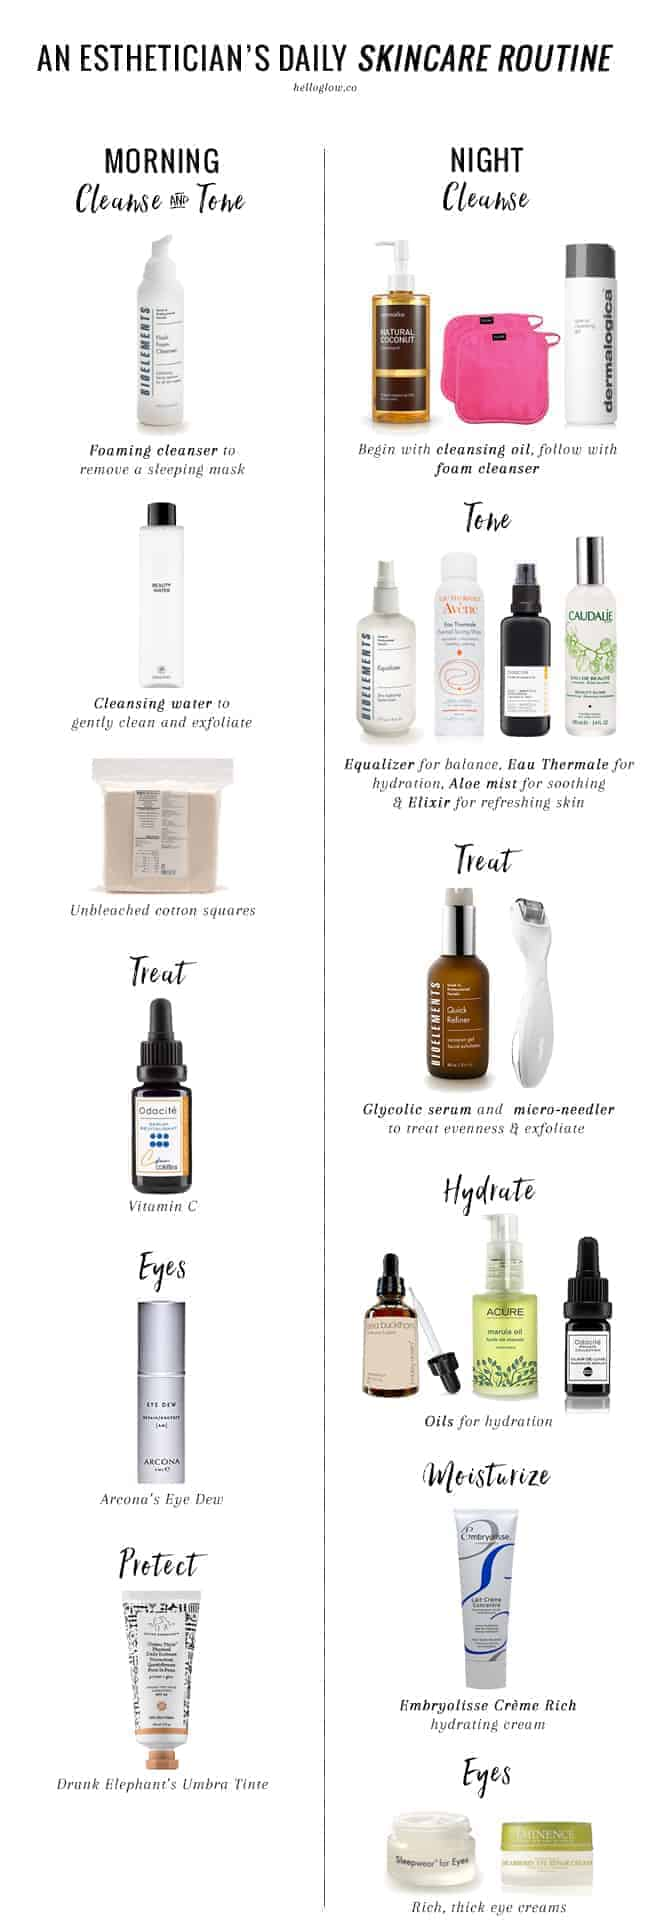 Our Esthetician Shares Her Daily Winter Skincare Routine